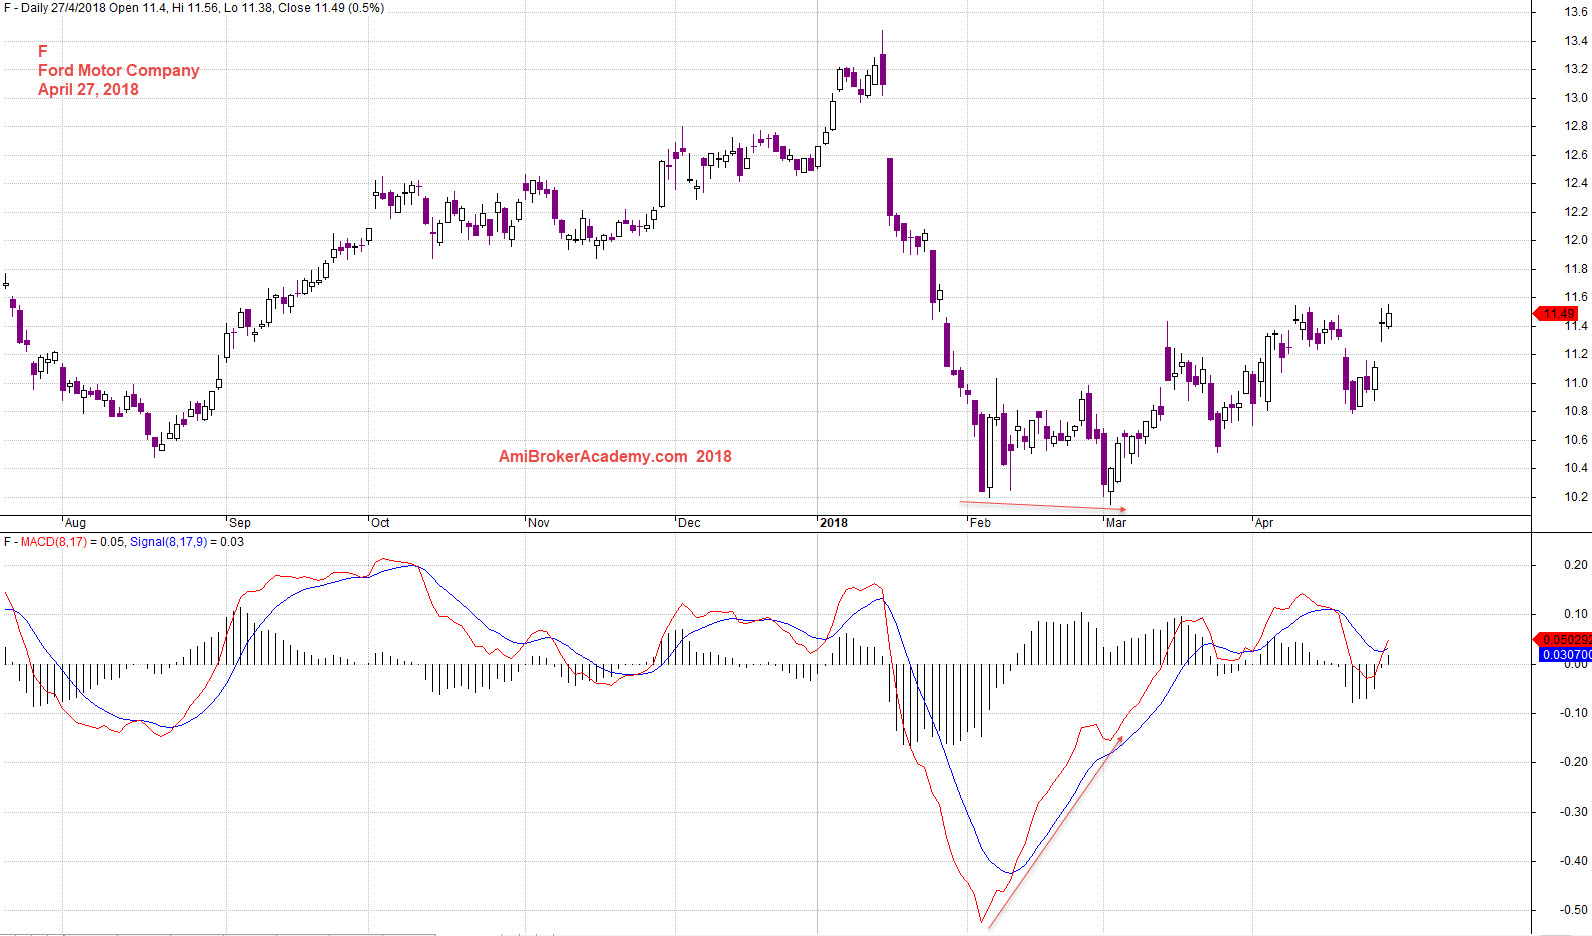 Ford motor company stock price and macd